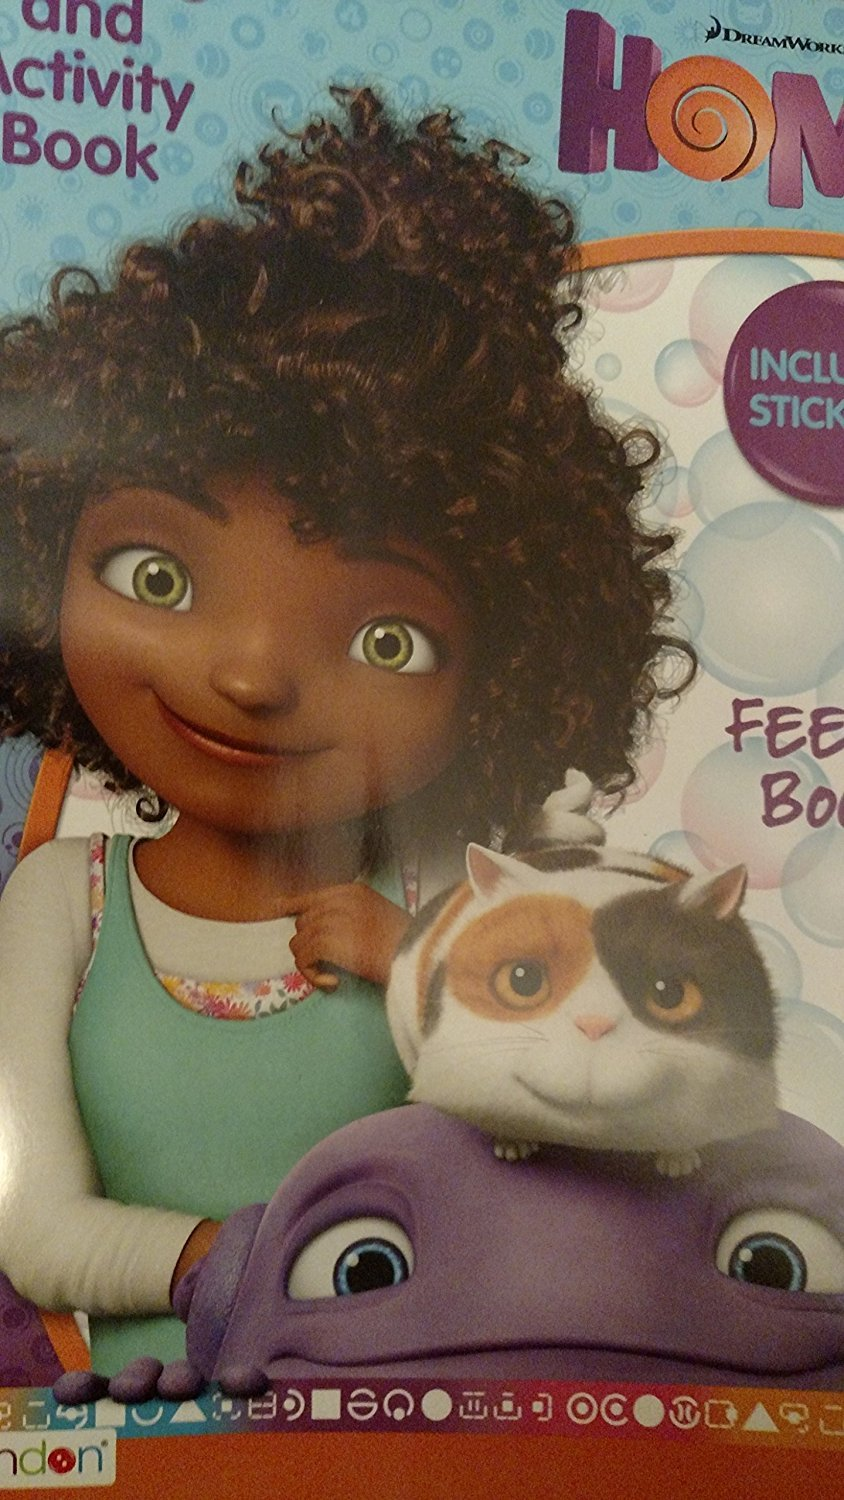 DreamWorks Feeling Boovy Coloring & Activity Book (Includes Stickers!)